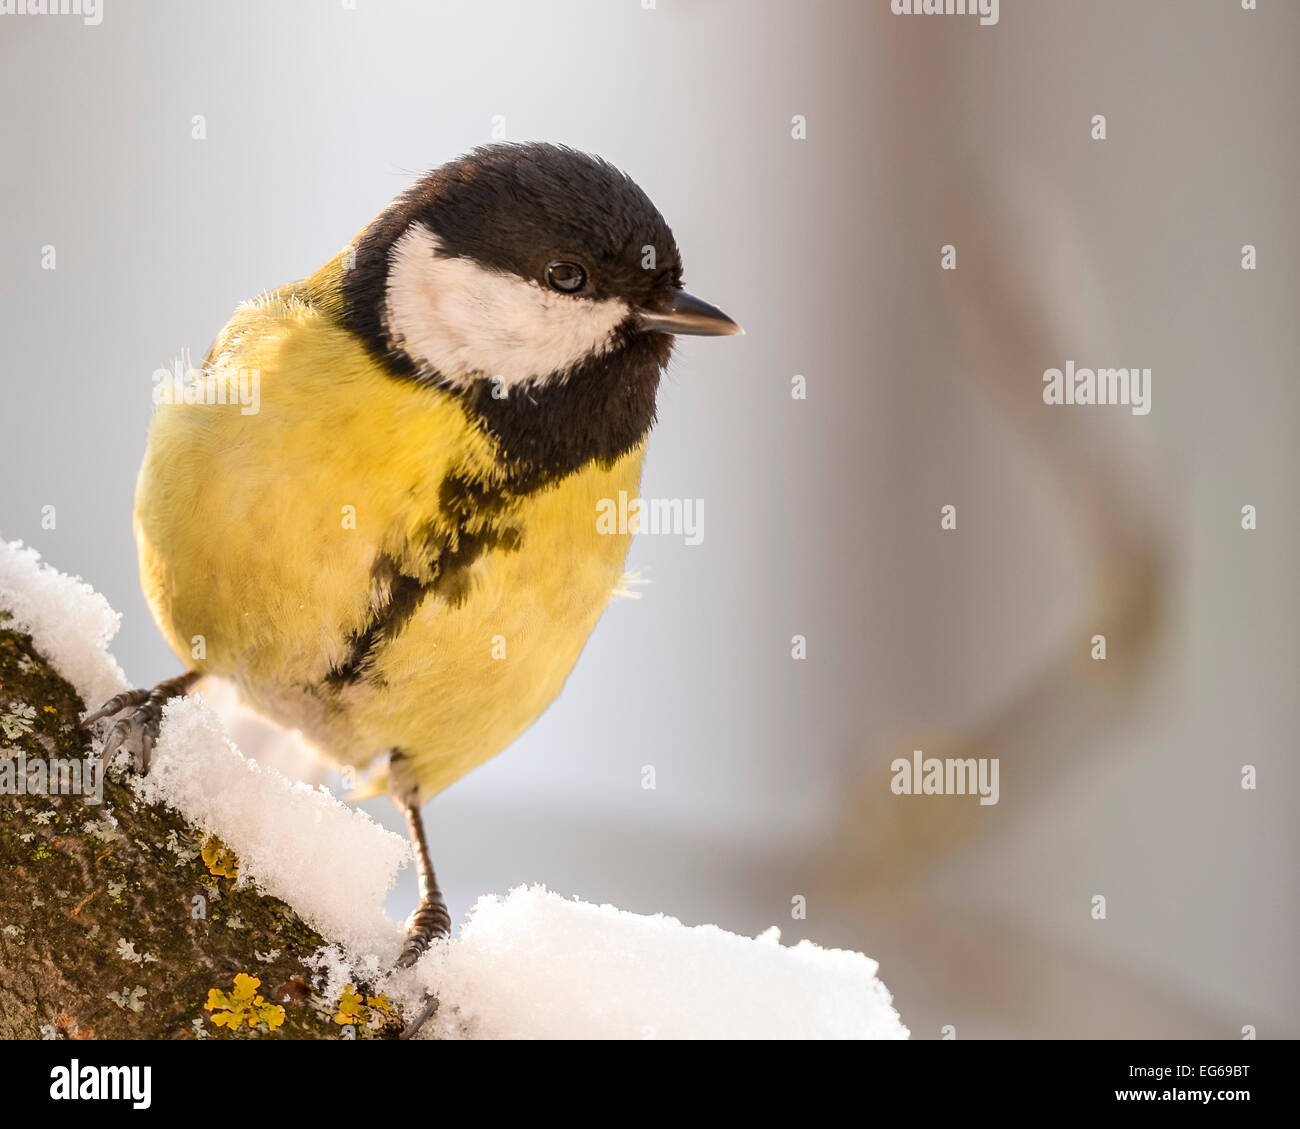 Great tit (parus major) sitting curiously on a snowy trunk. Stock Photo